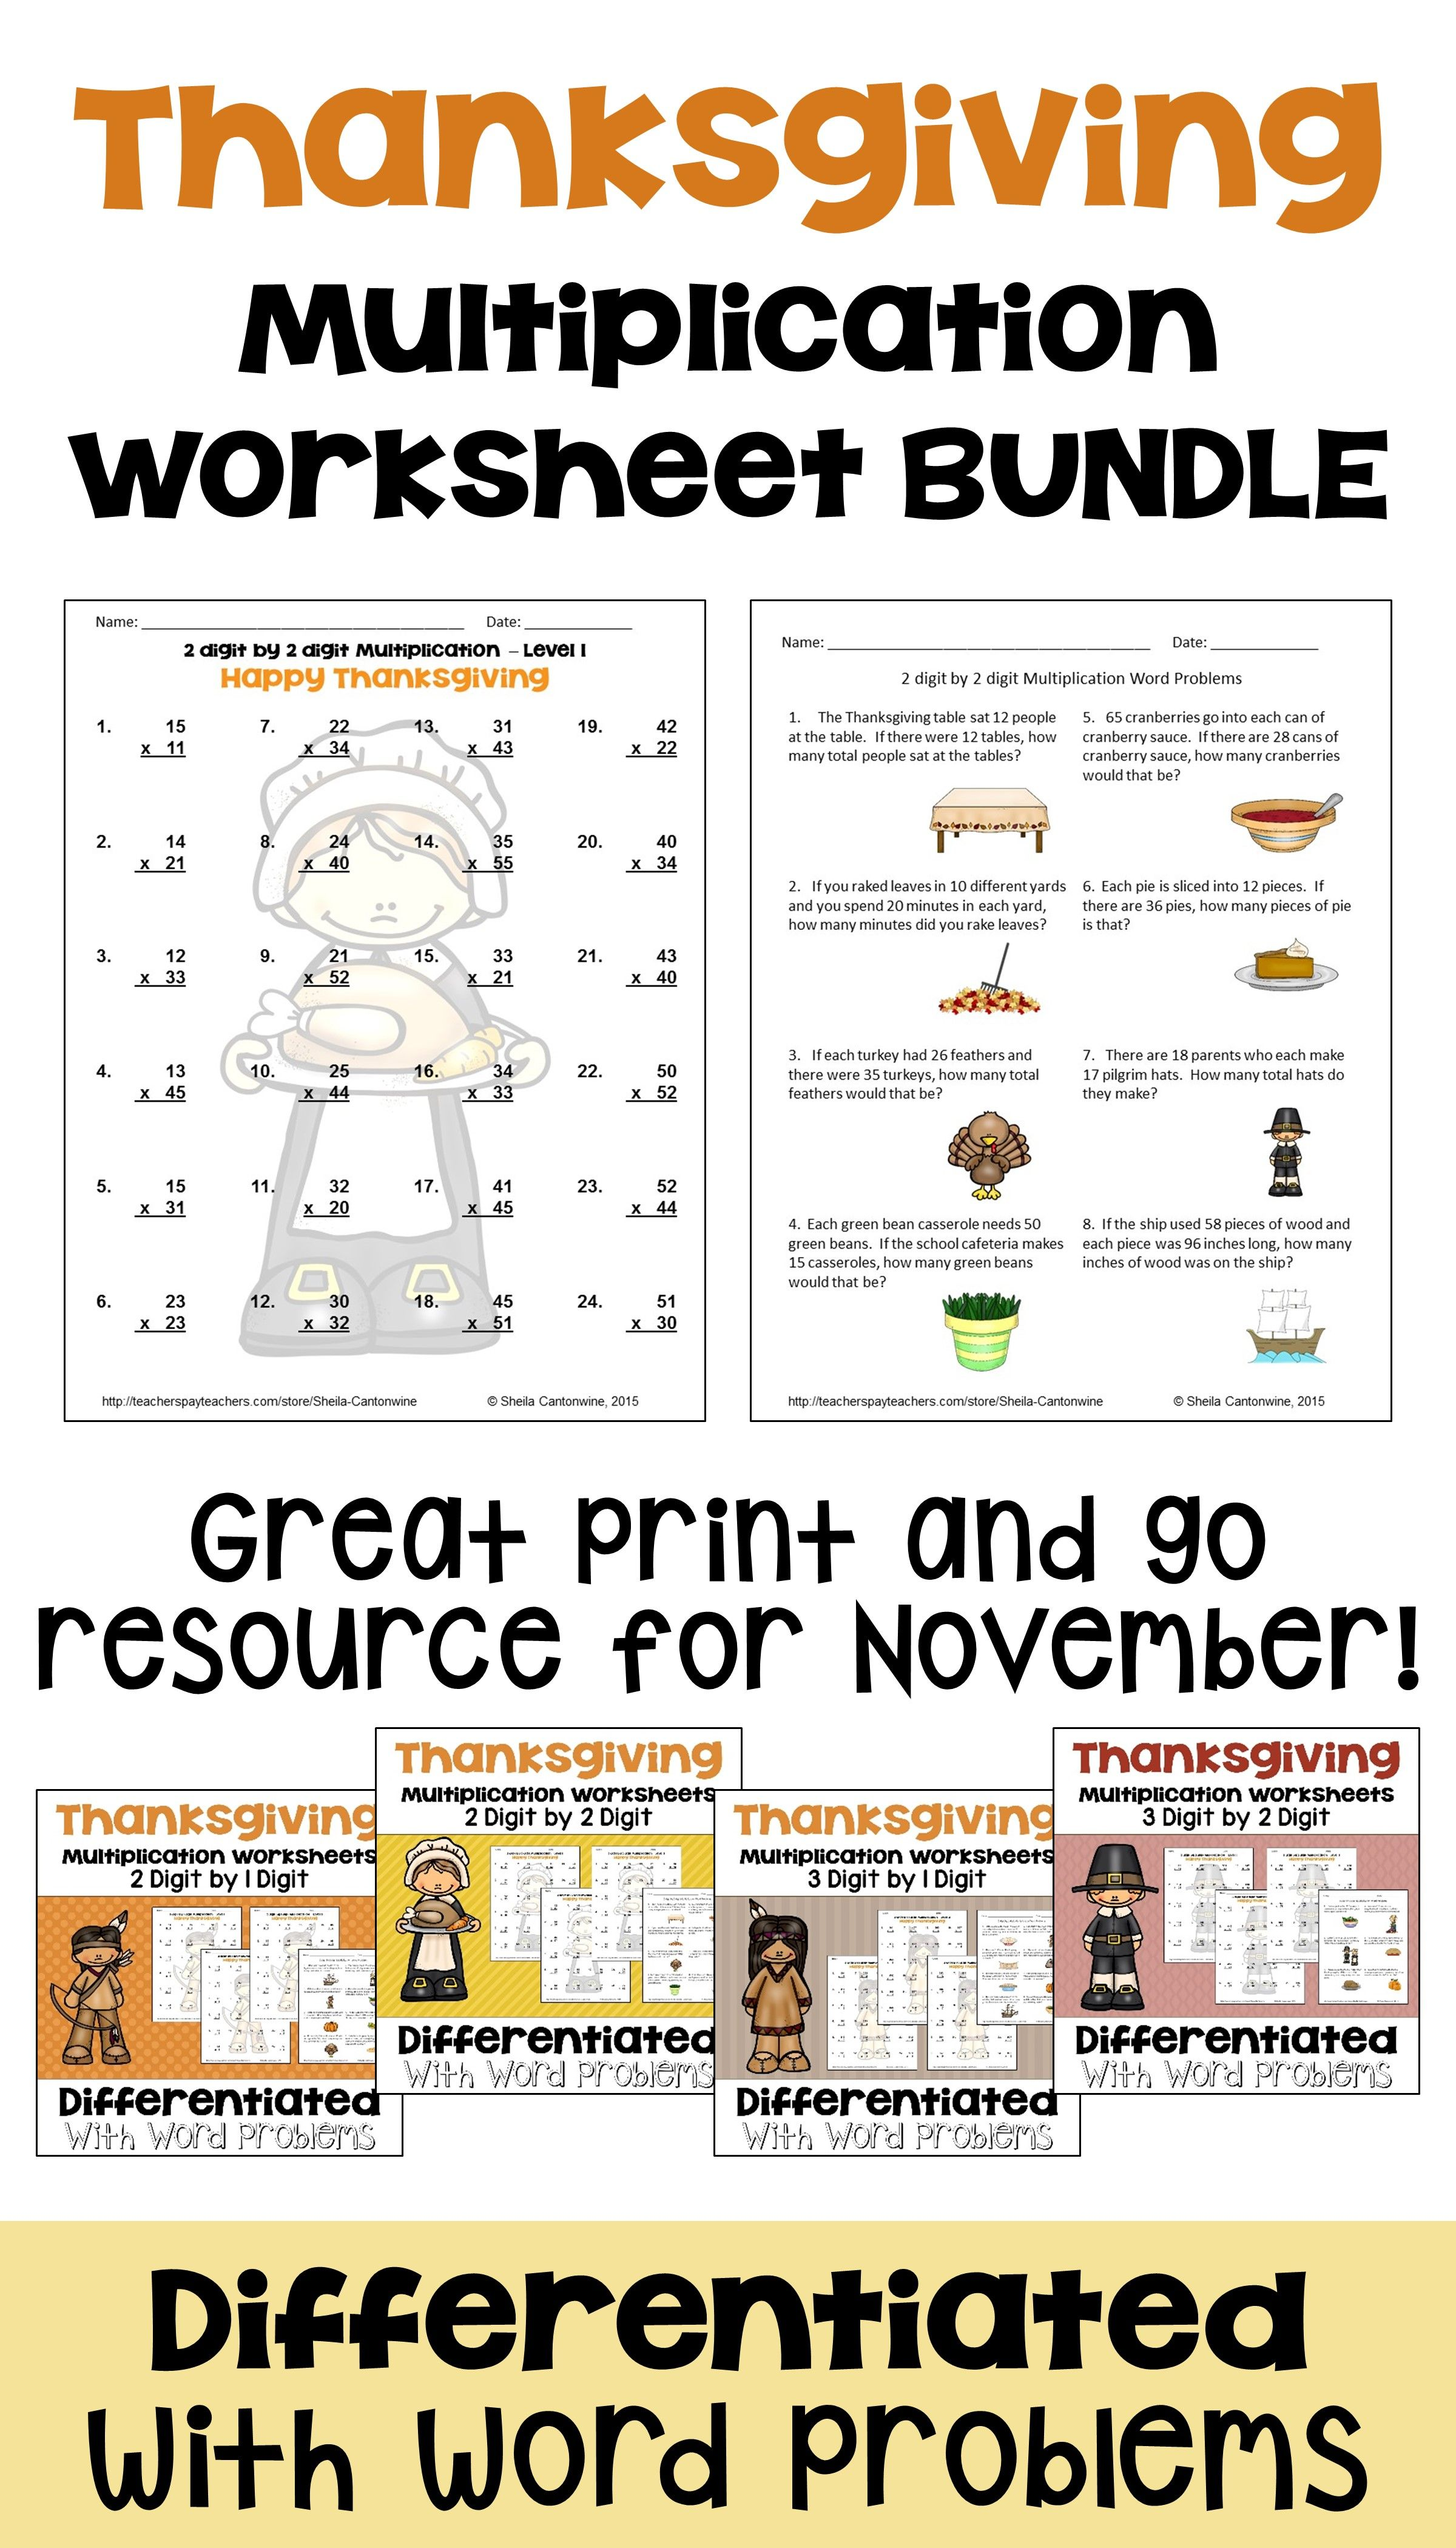 hight resolution of Thanksgiving Multiplication Worksheet Bundle with Word Problems   Thanksgiving  math